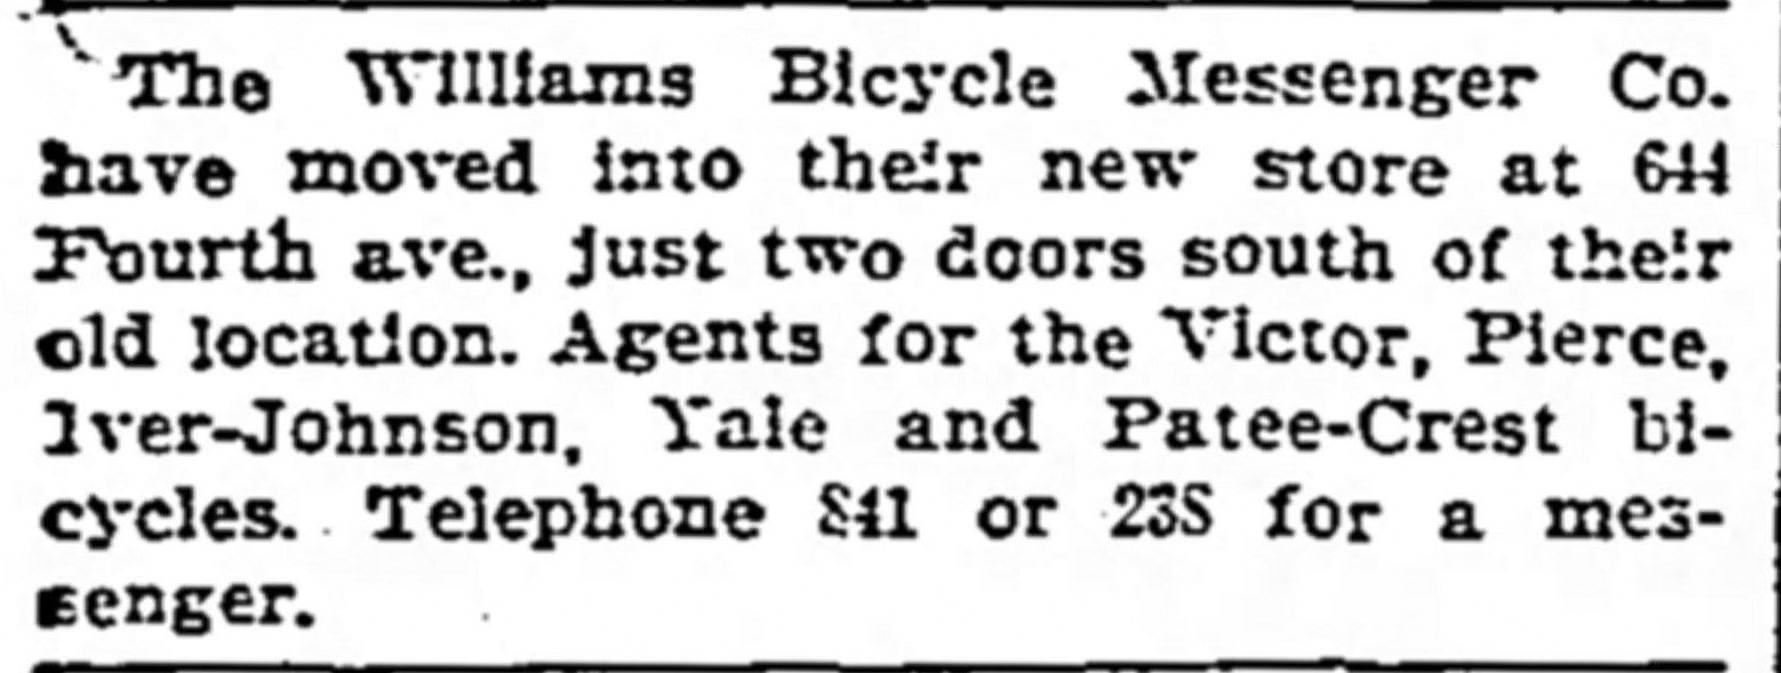 Williams-Bicycle-Messenger-Company-Louisville-Kentucky-1889-velo-Fahrrad-charges-paid-City-Directory